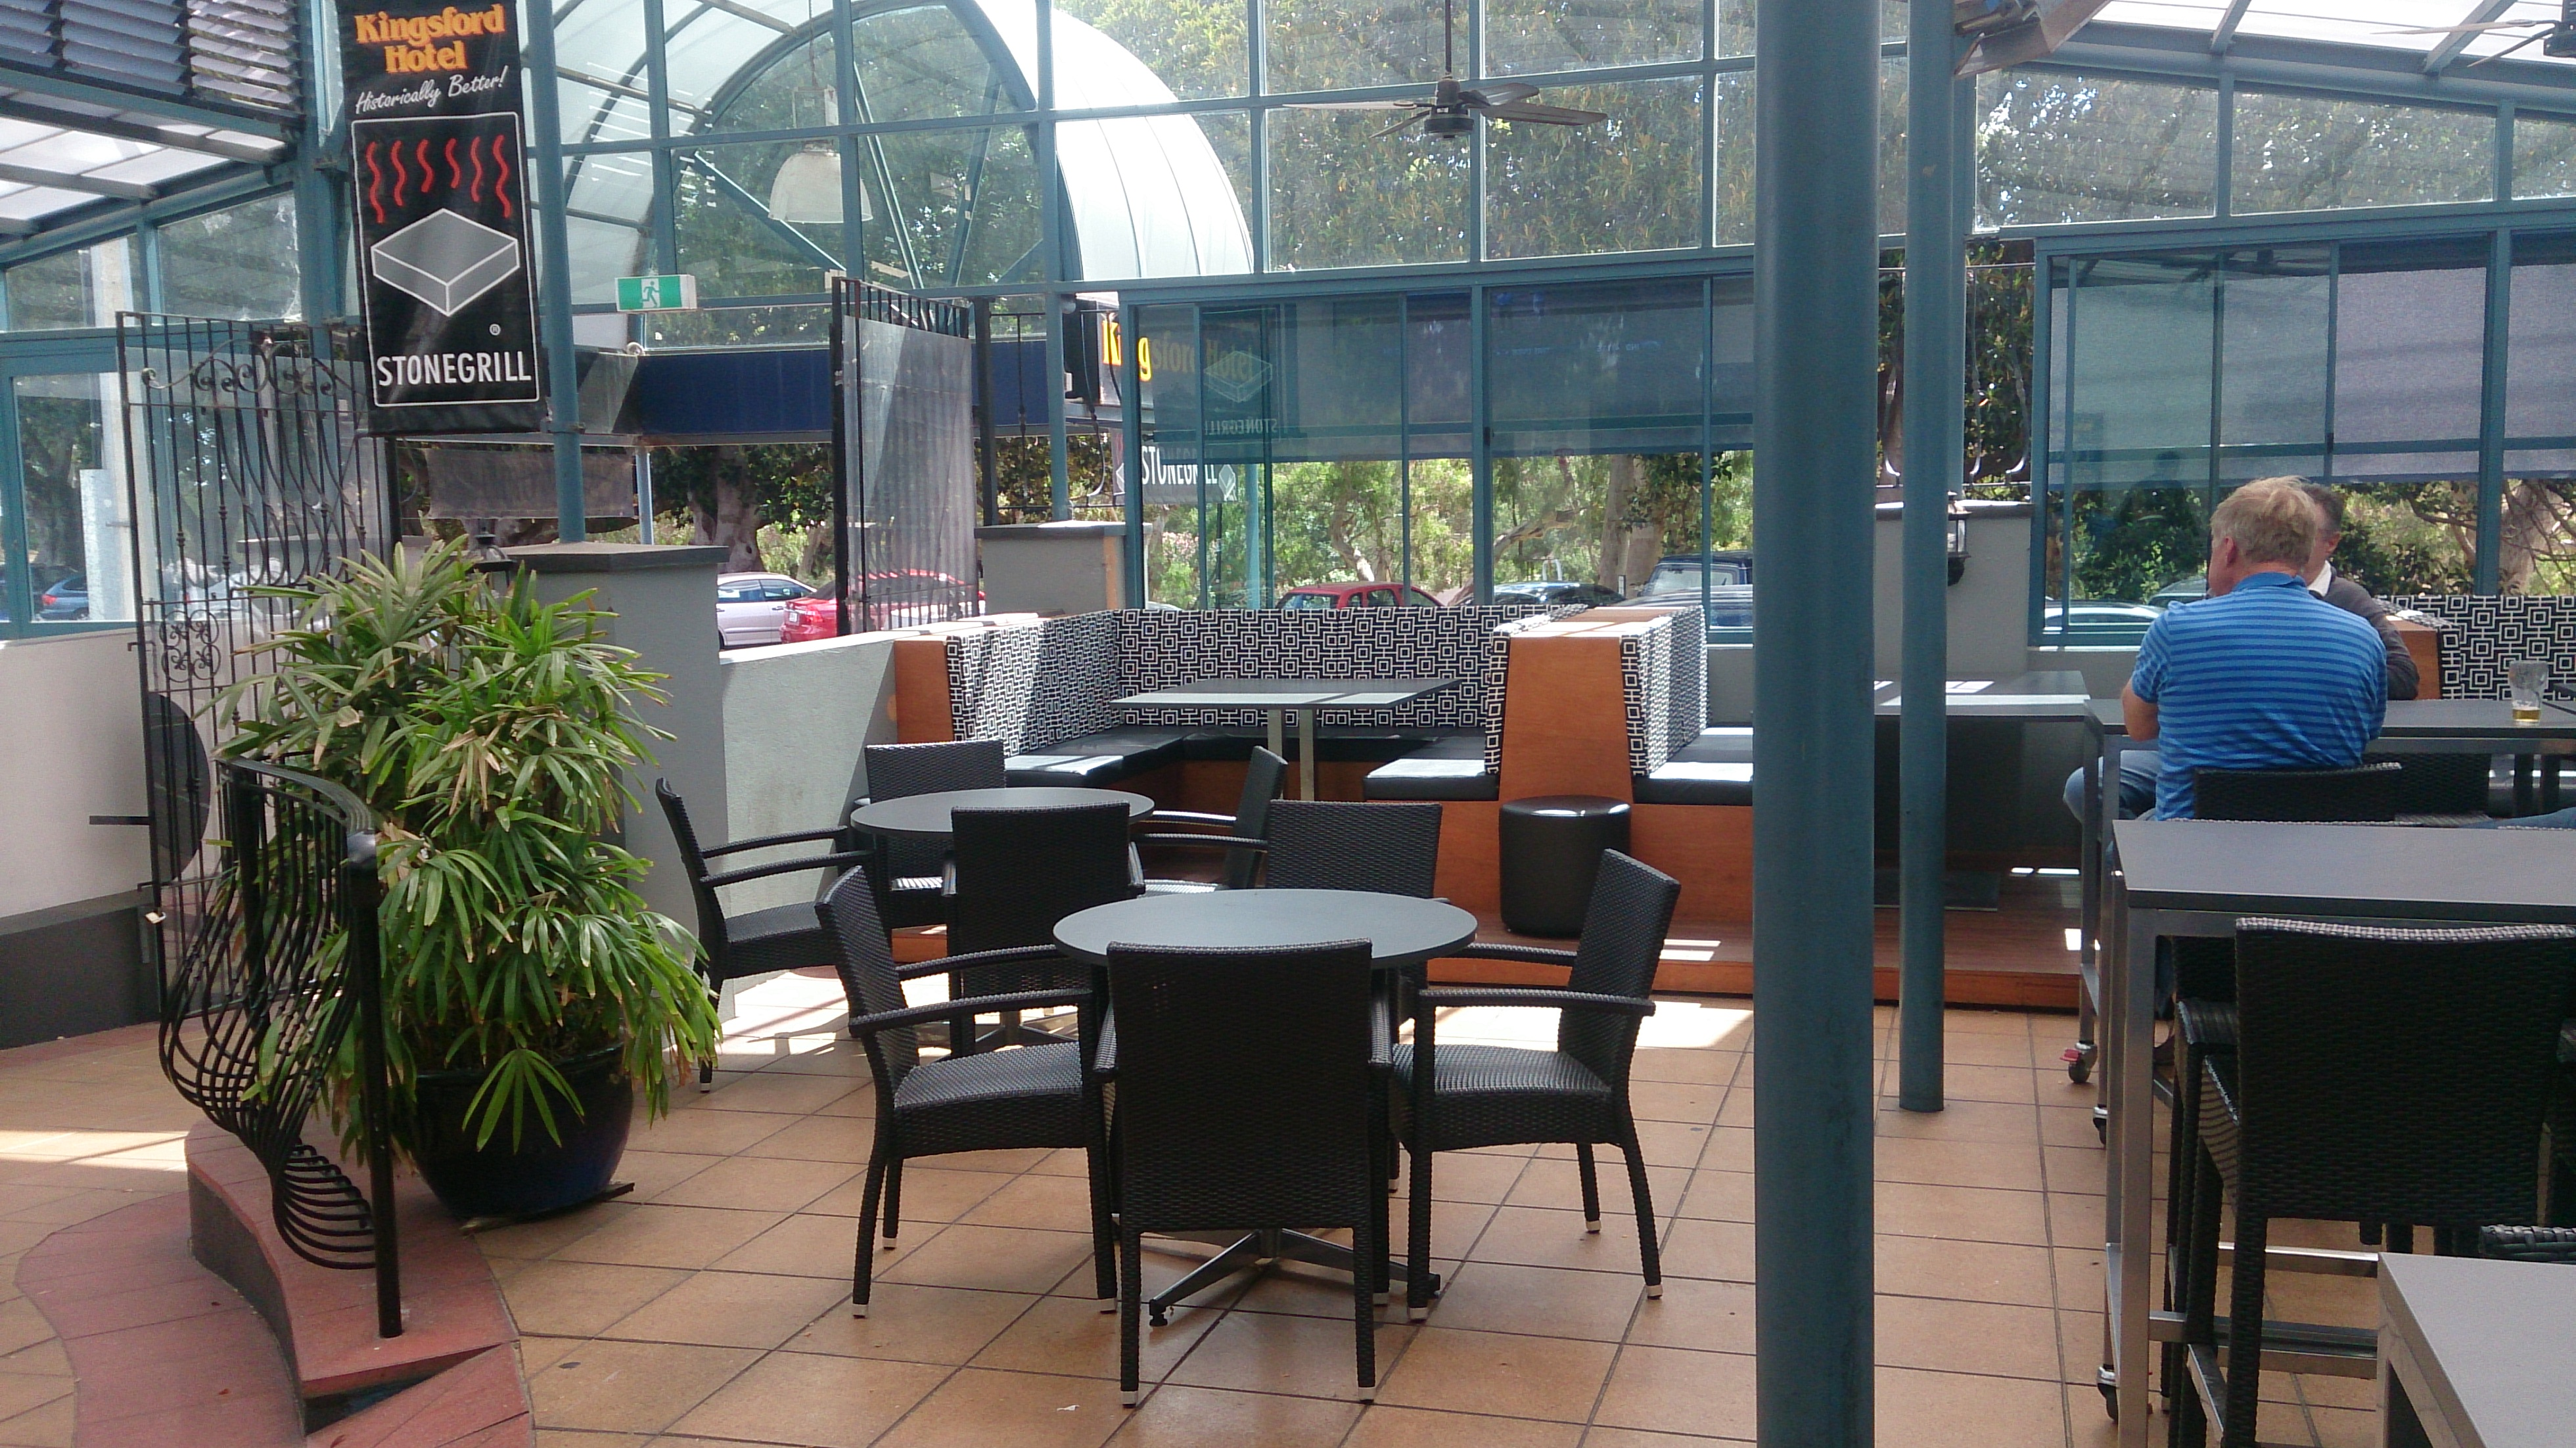 Kingsford Hotel - Mount Gambier Accommodation